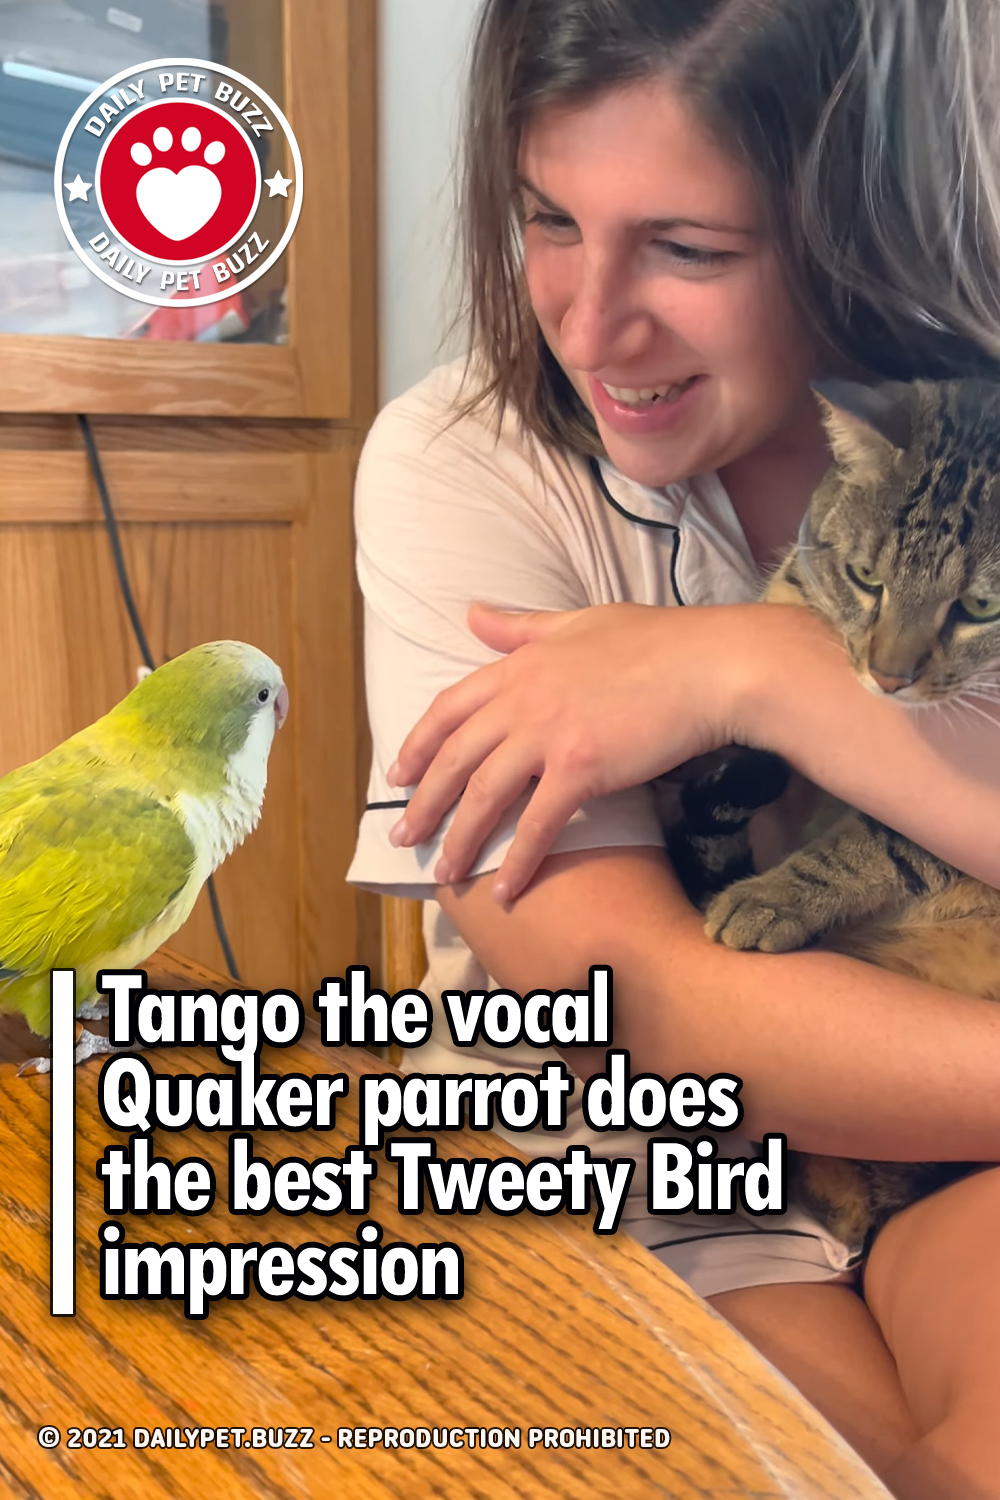 Tango the vocal Quaker parrot does the best Tweety Bird impression